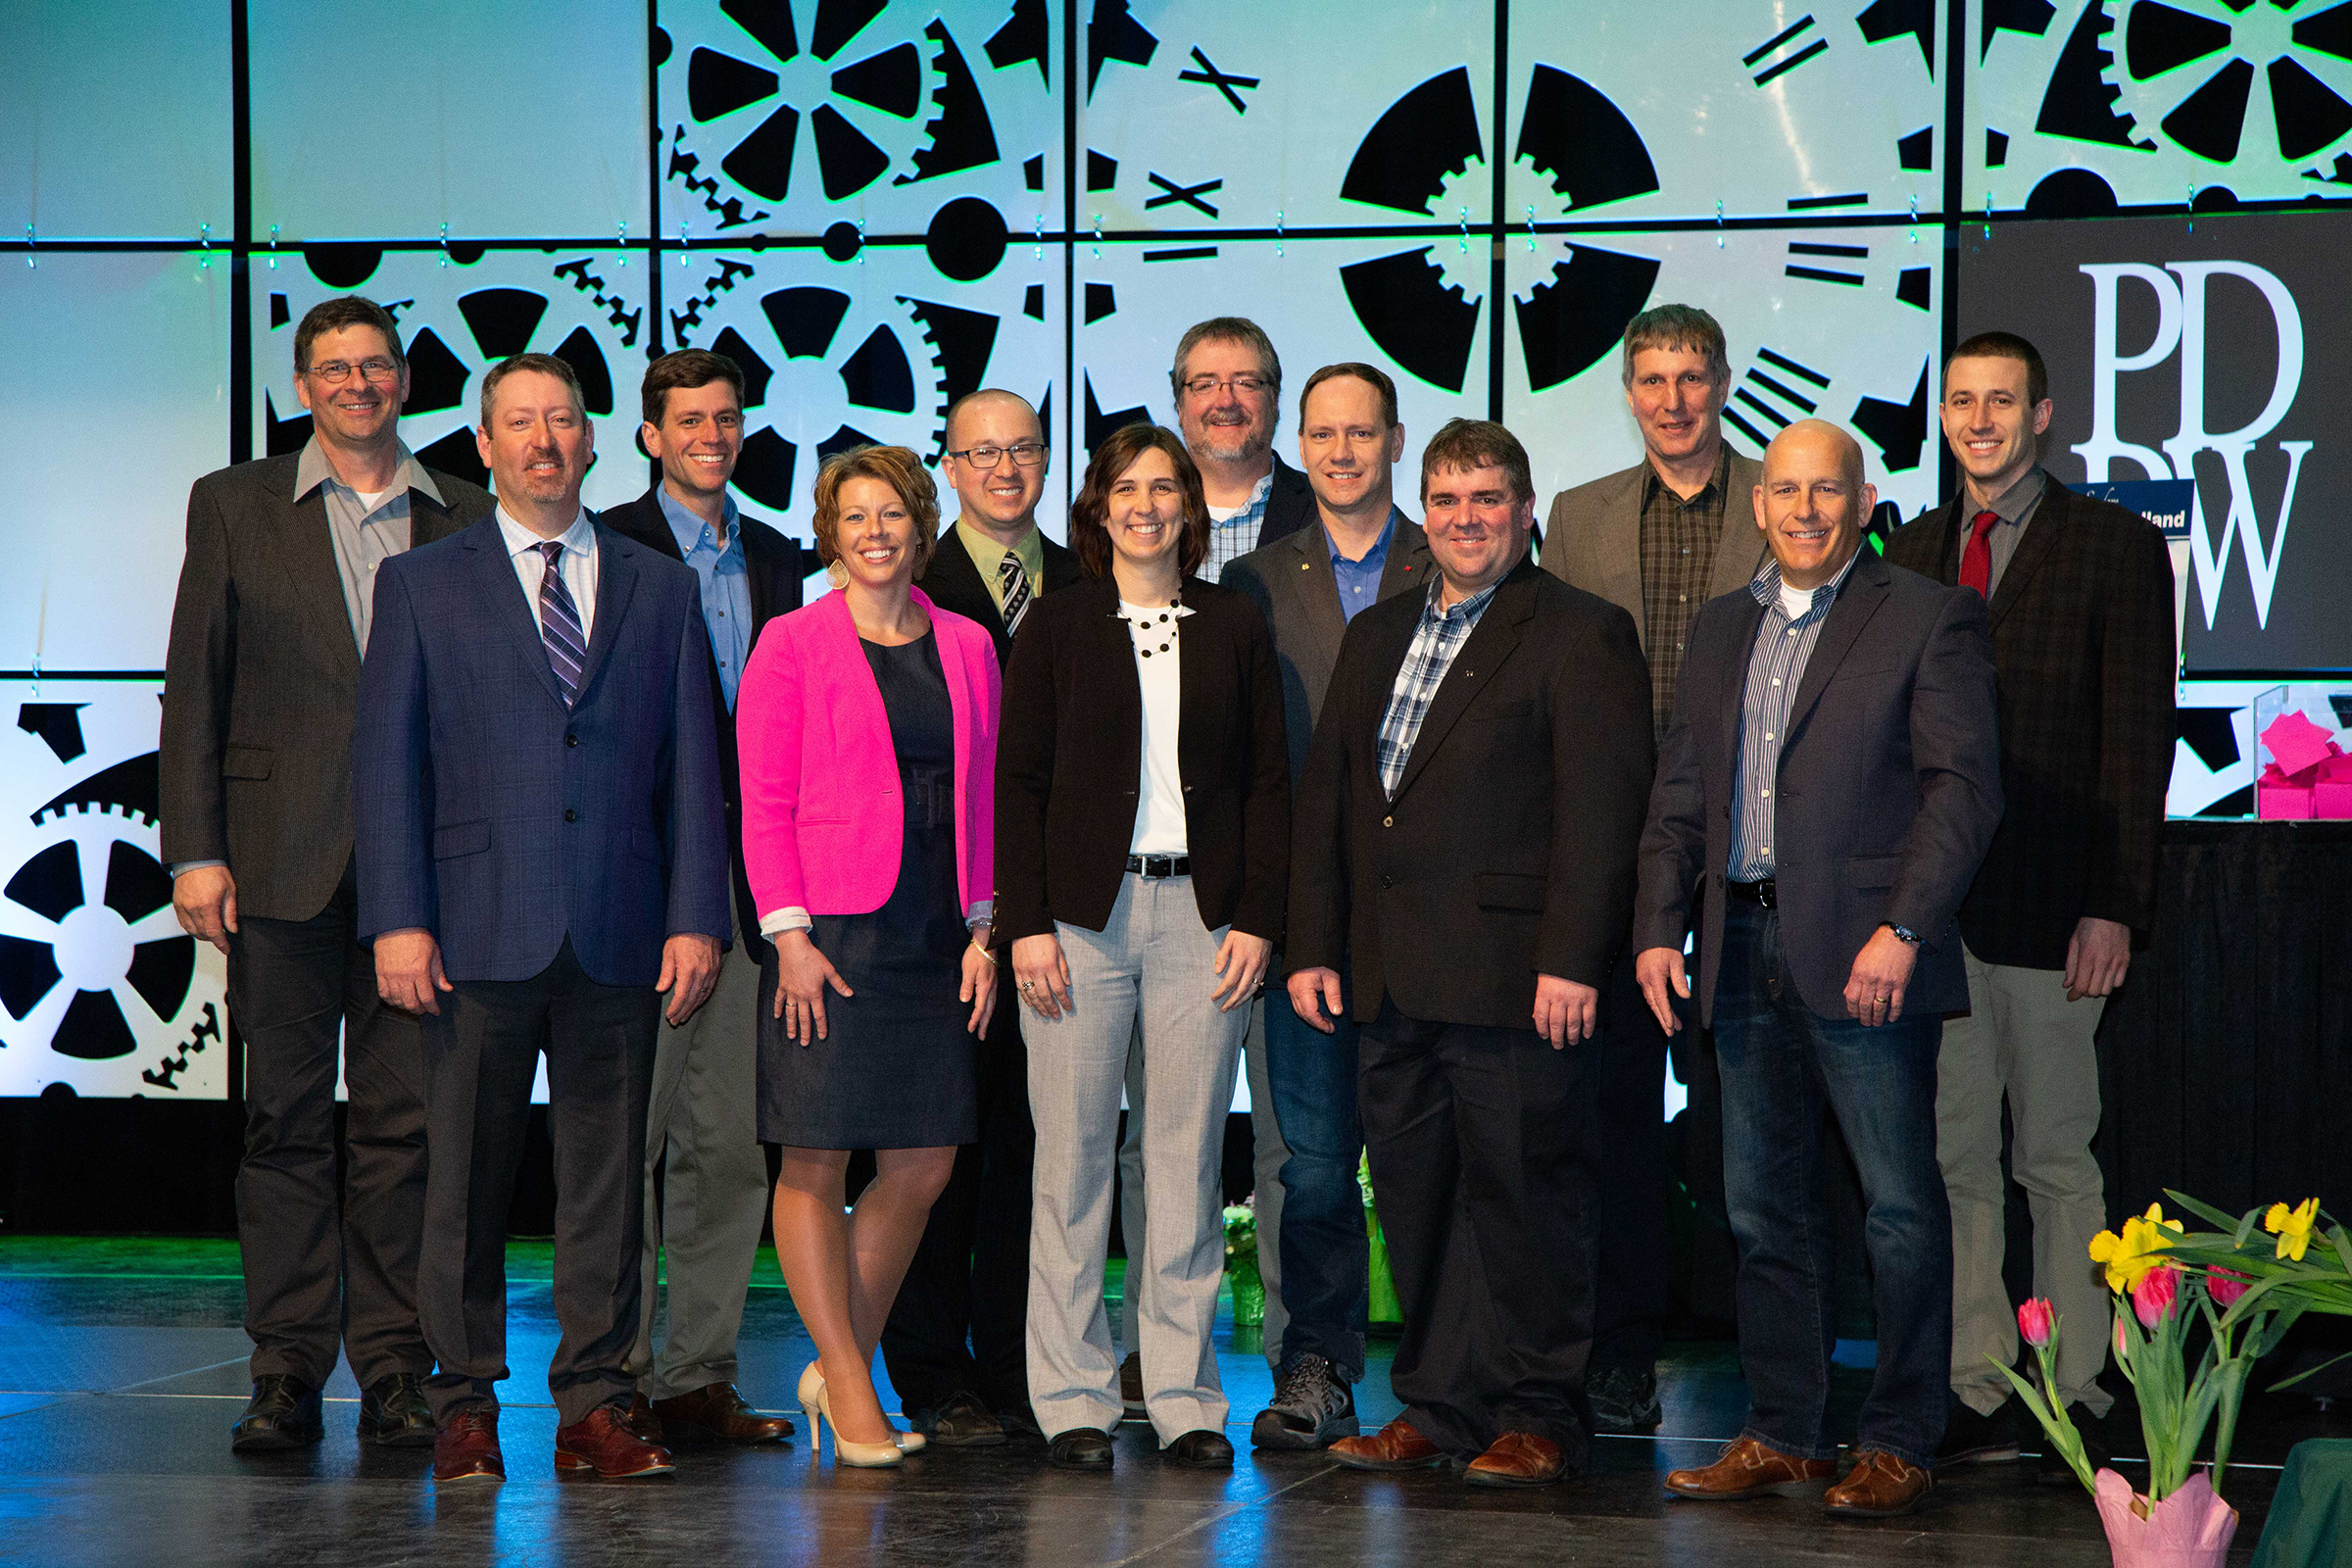 2019-20 PDPW Board of Directors and Advisors of the Board